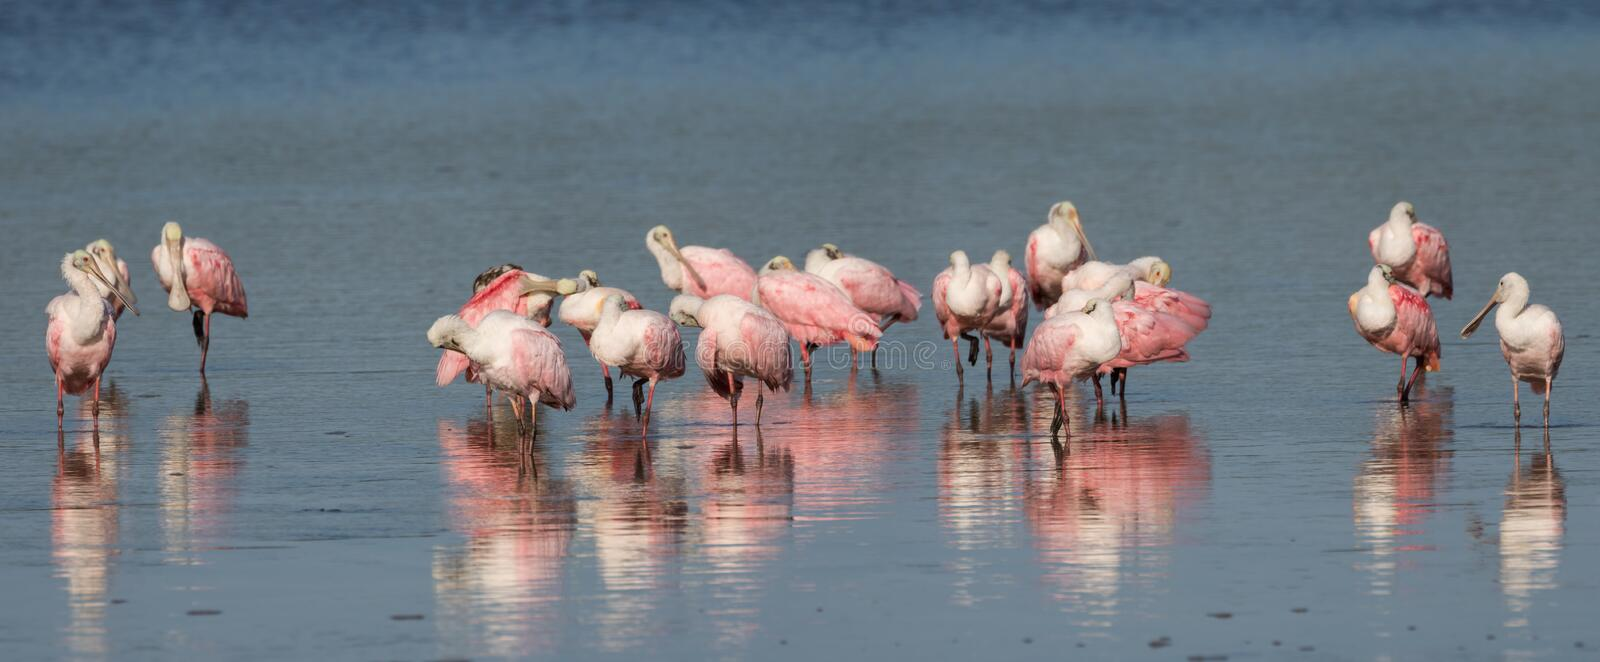 Rosa Spoonbills, J n `` Klingeln `` Darling National Wildlife Refu stockbilder